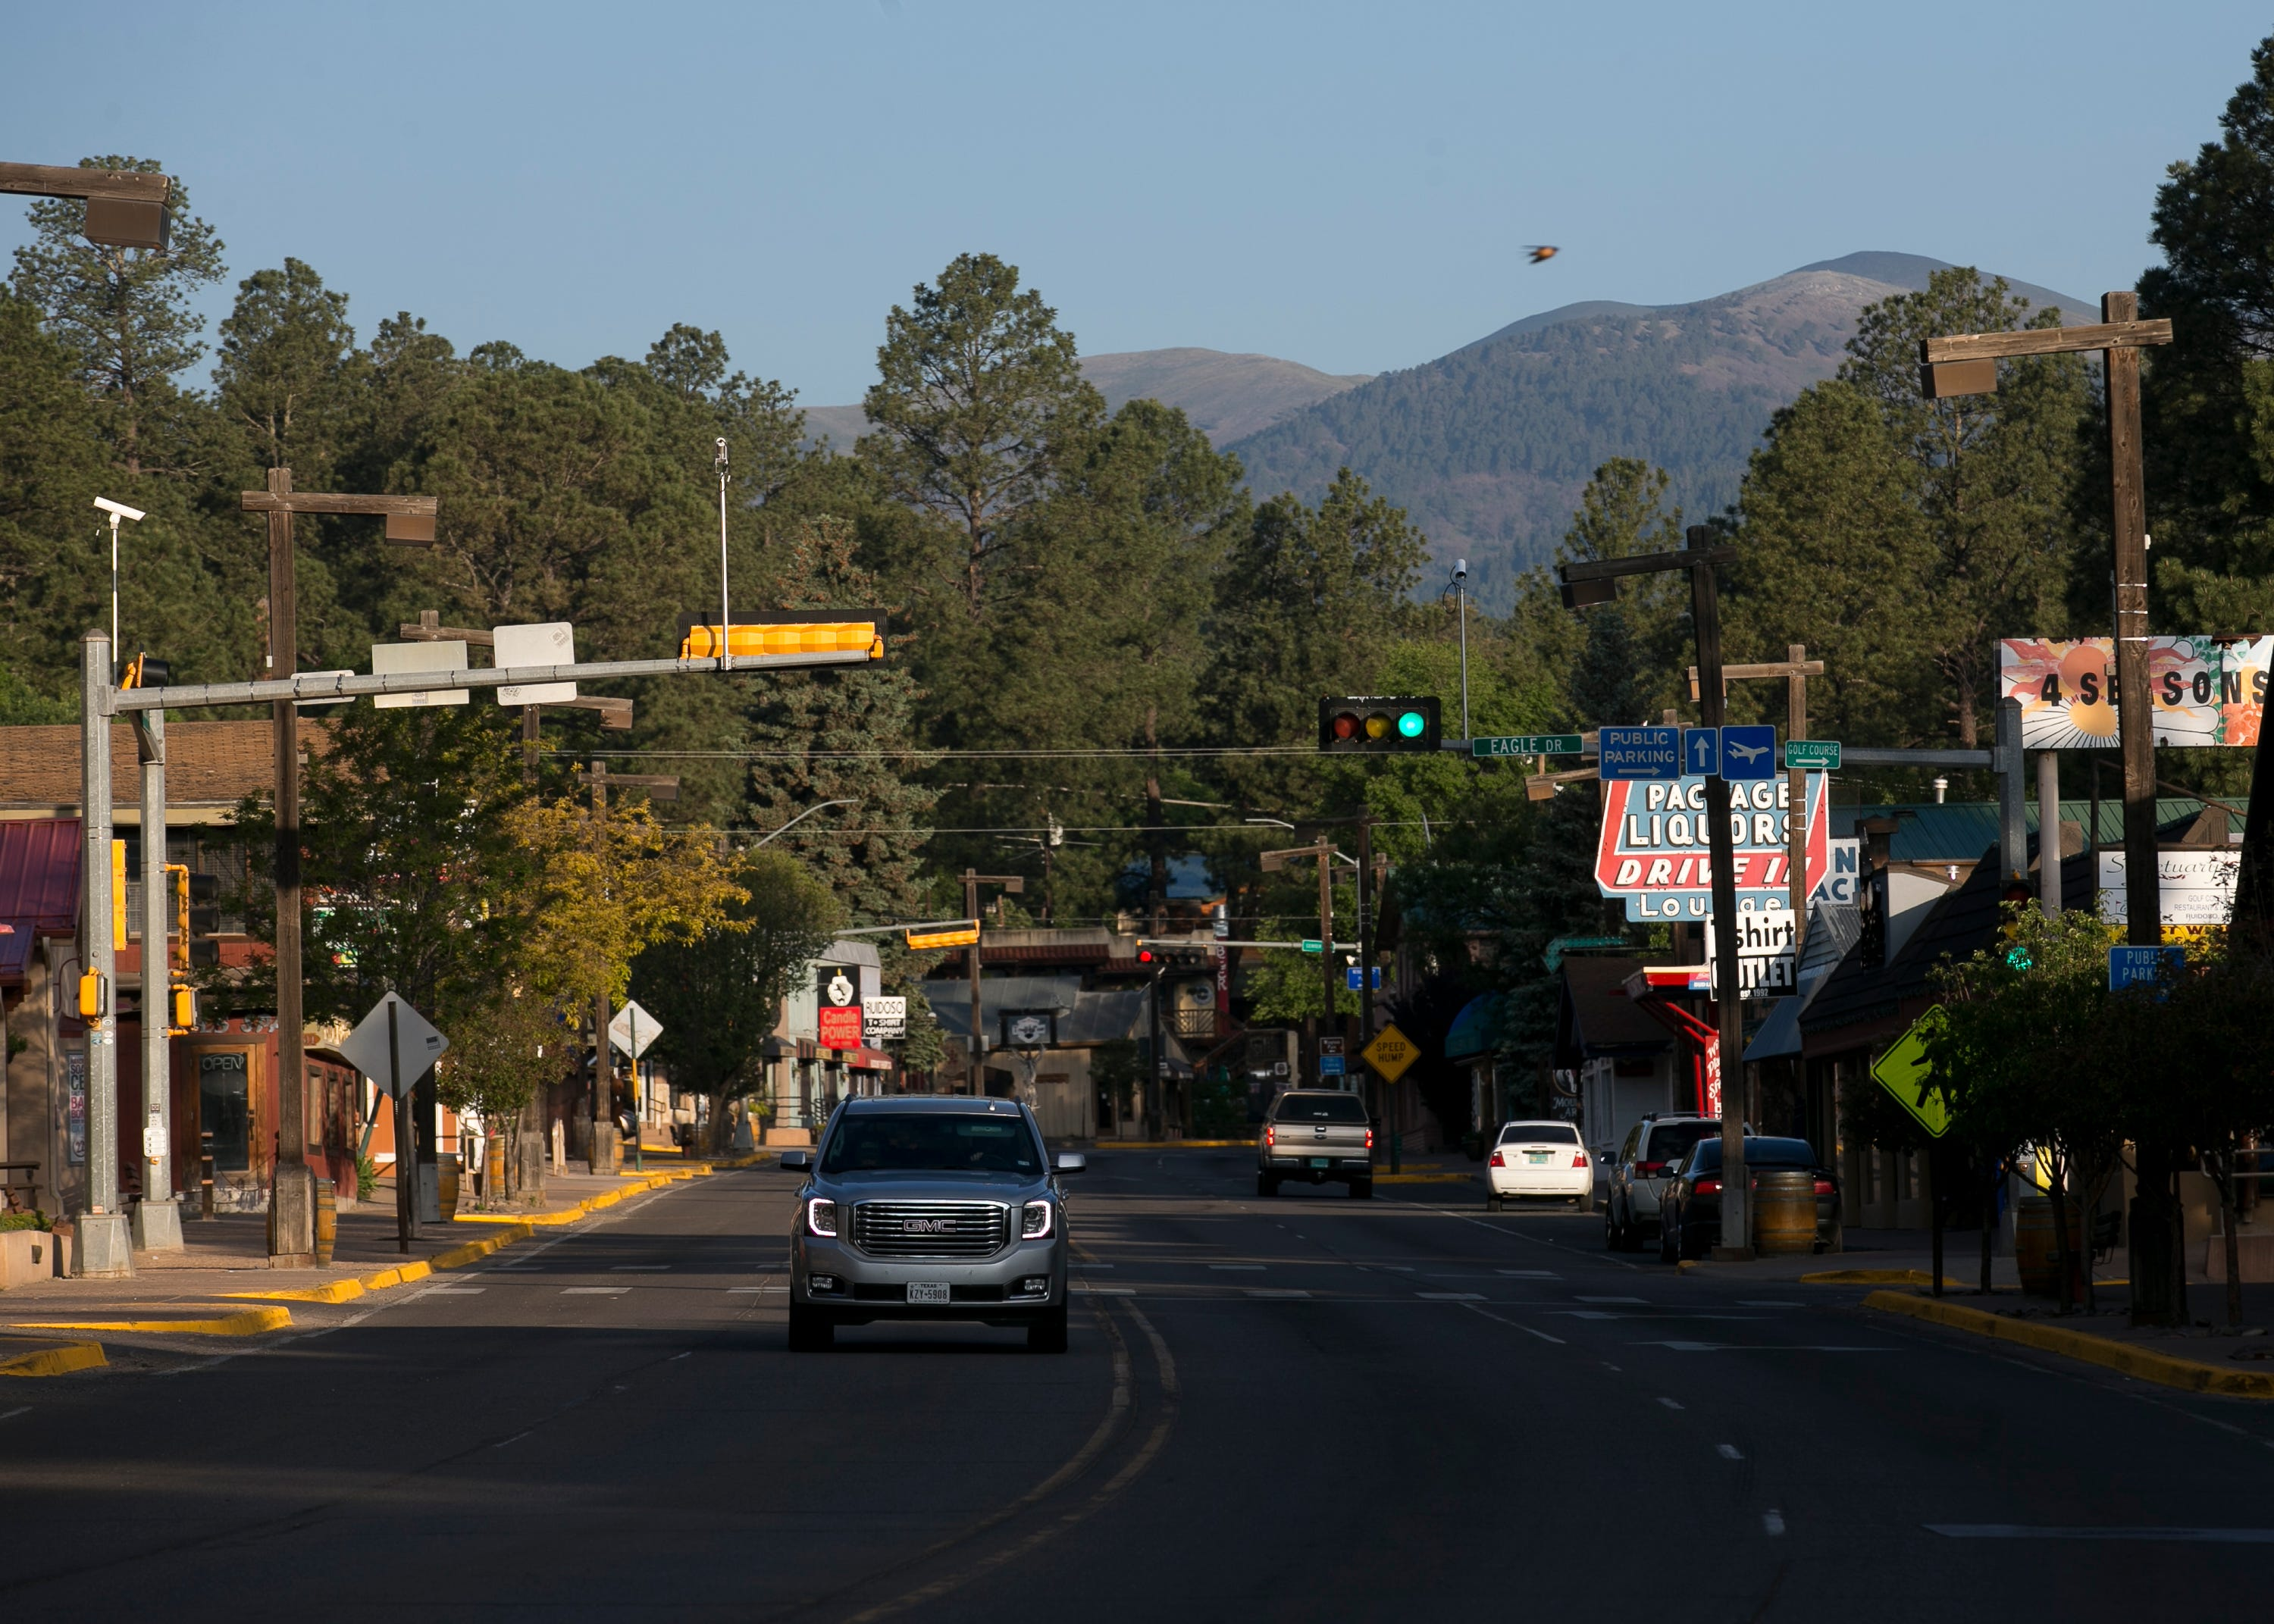 A vehicle drives through the main business strip in Ruidoso, New Mexico, on June 1, 2019.